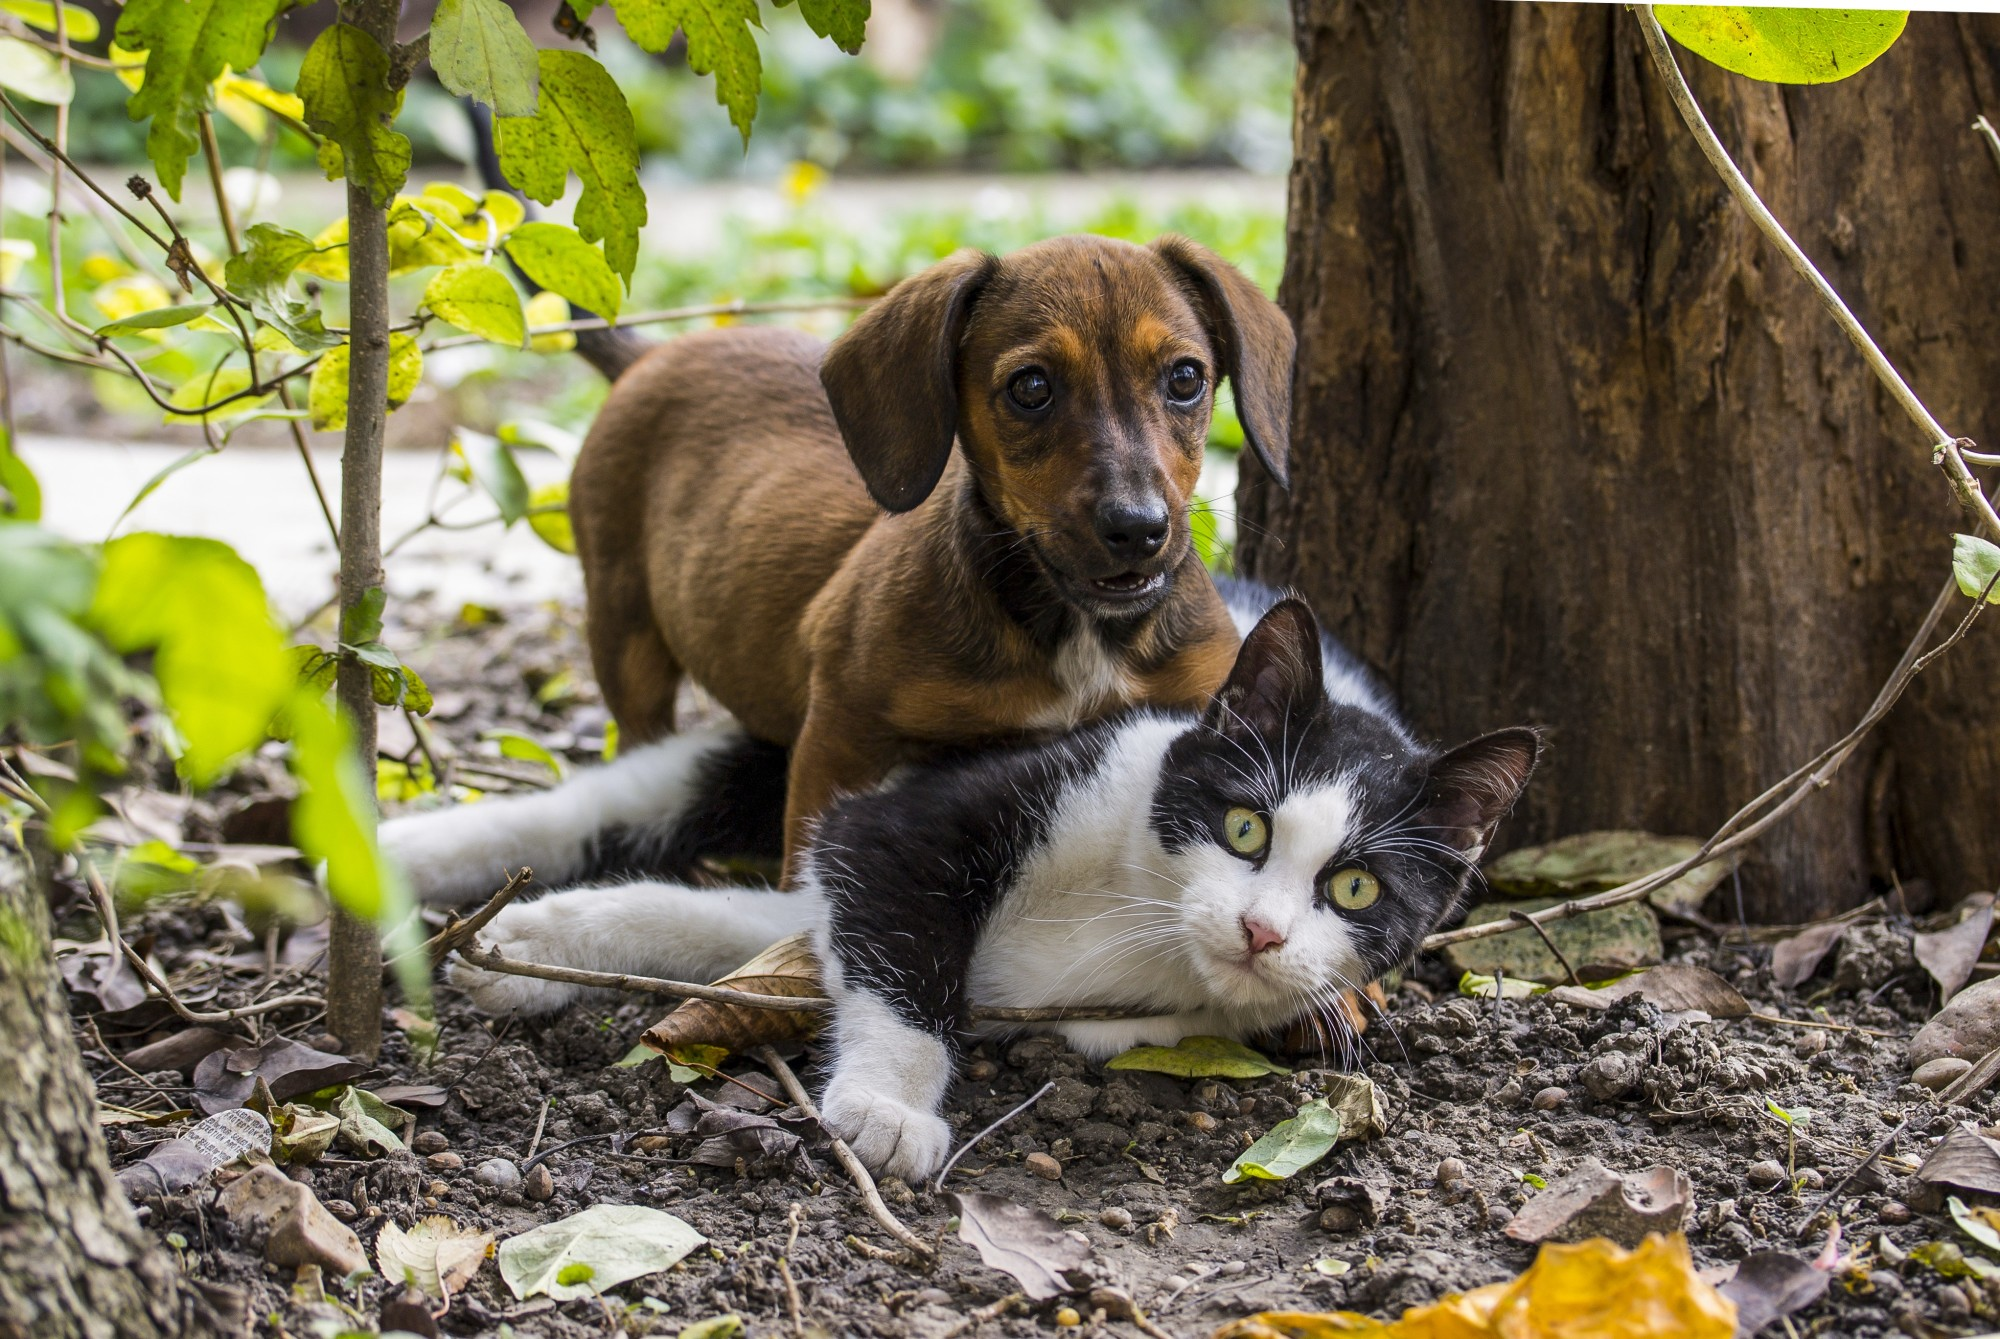 Dogs vs Cats: Which is right for you?